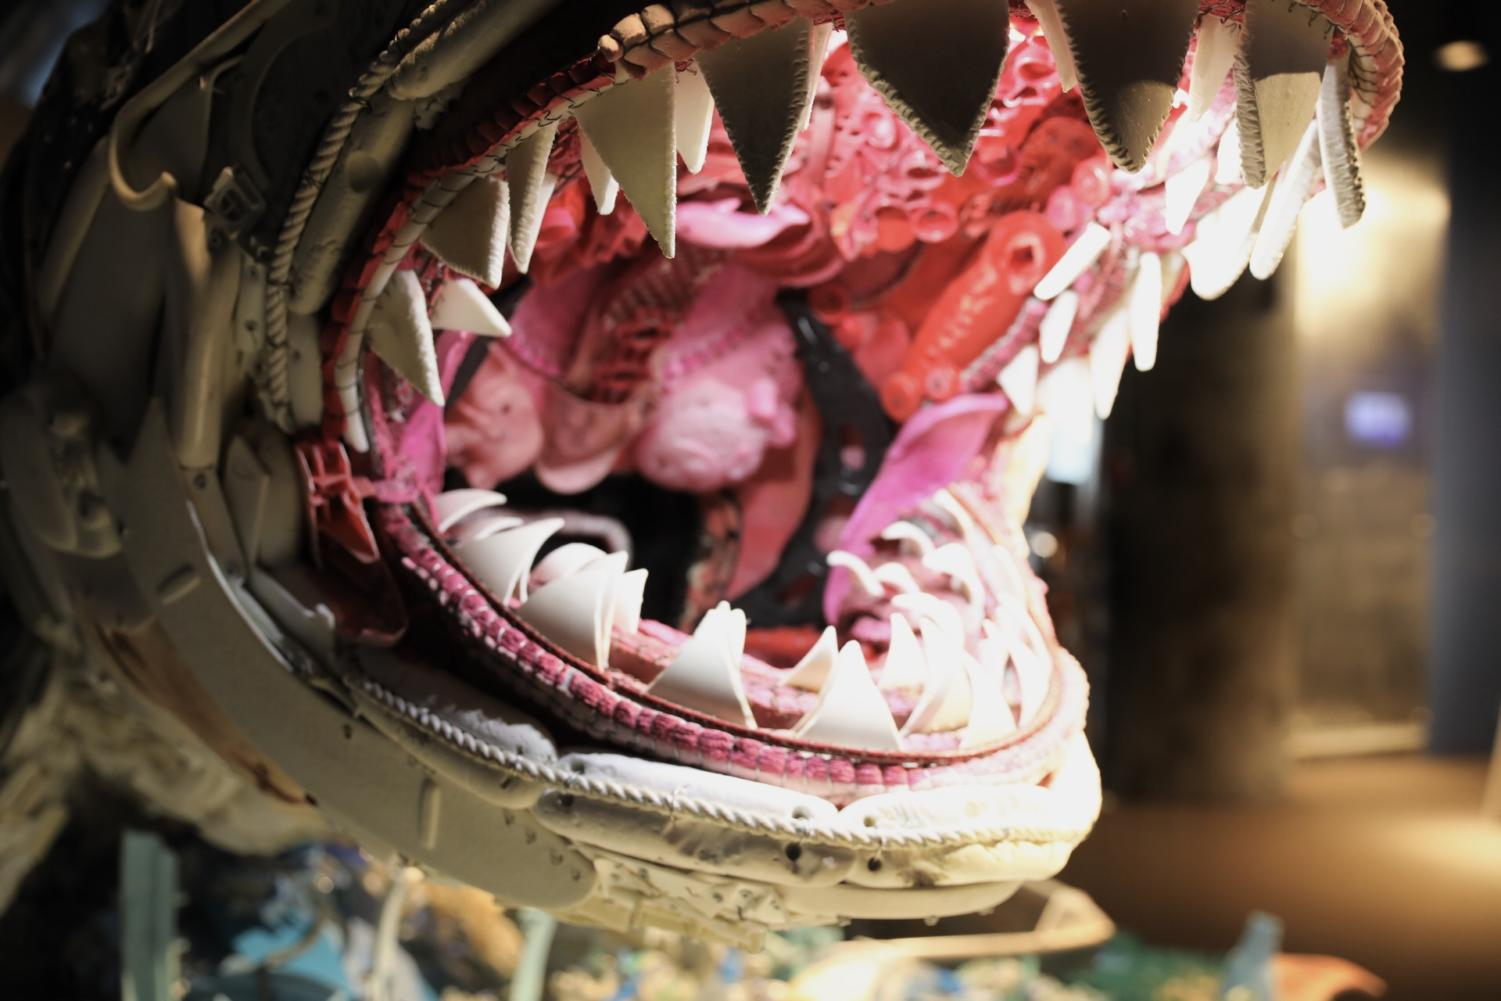 A toilet seat and other litter make up the sculpture of a Great White Shark. Featured sculptures were made up of litter. Photo credit: Andres Fuentes